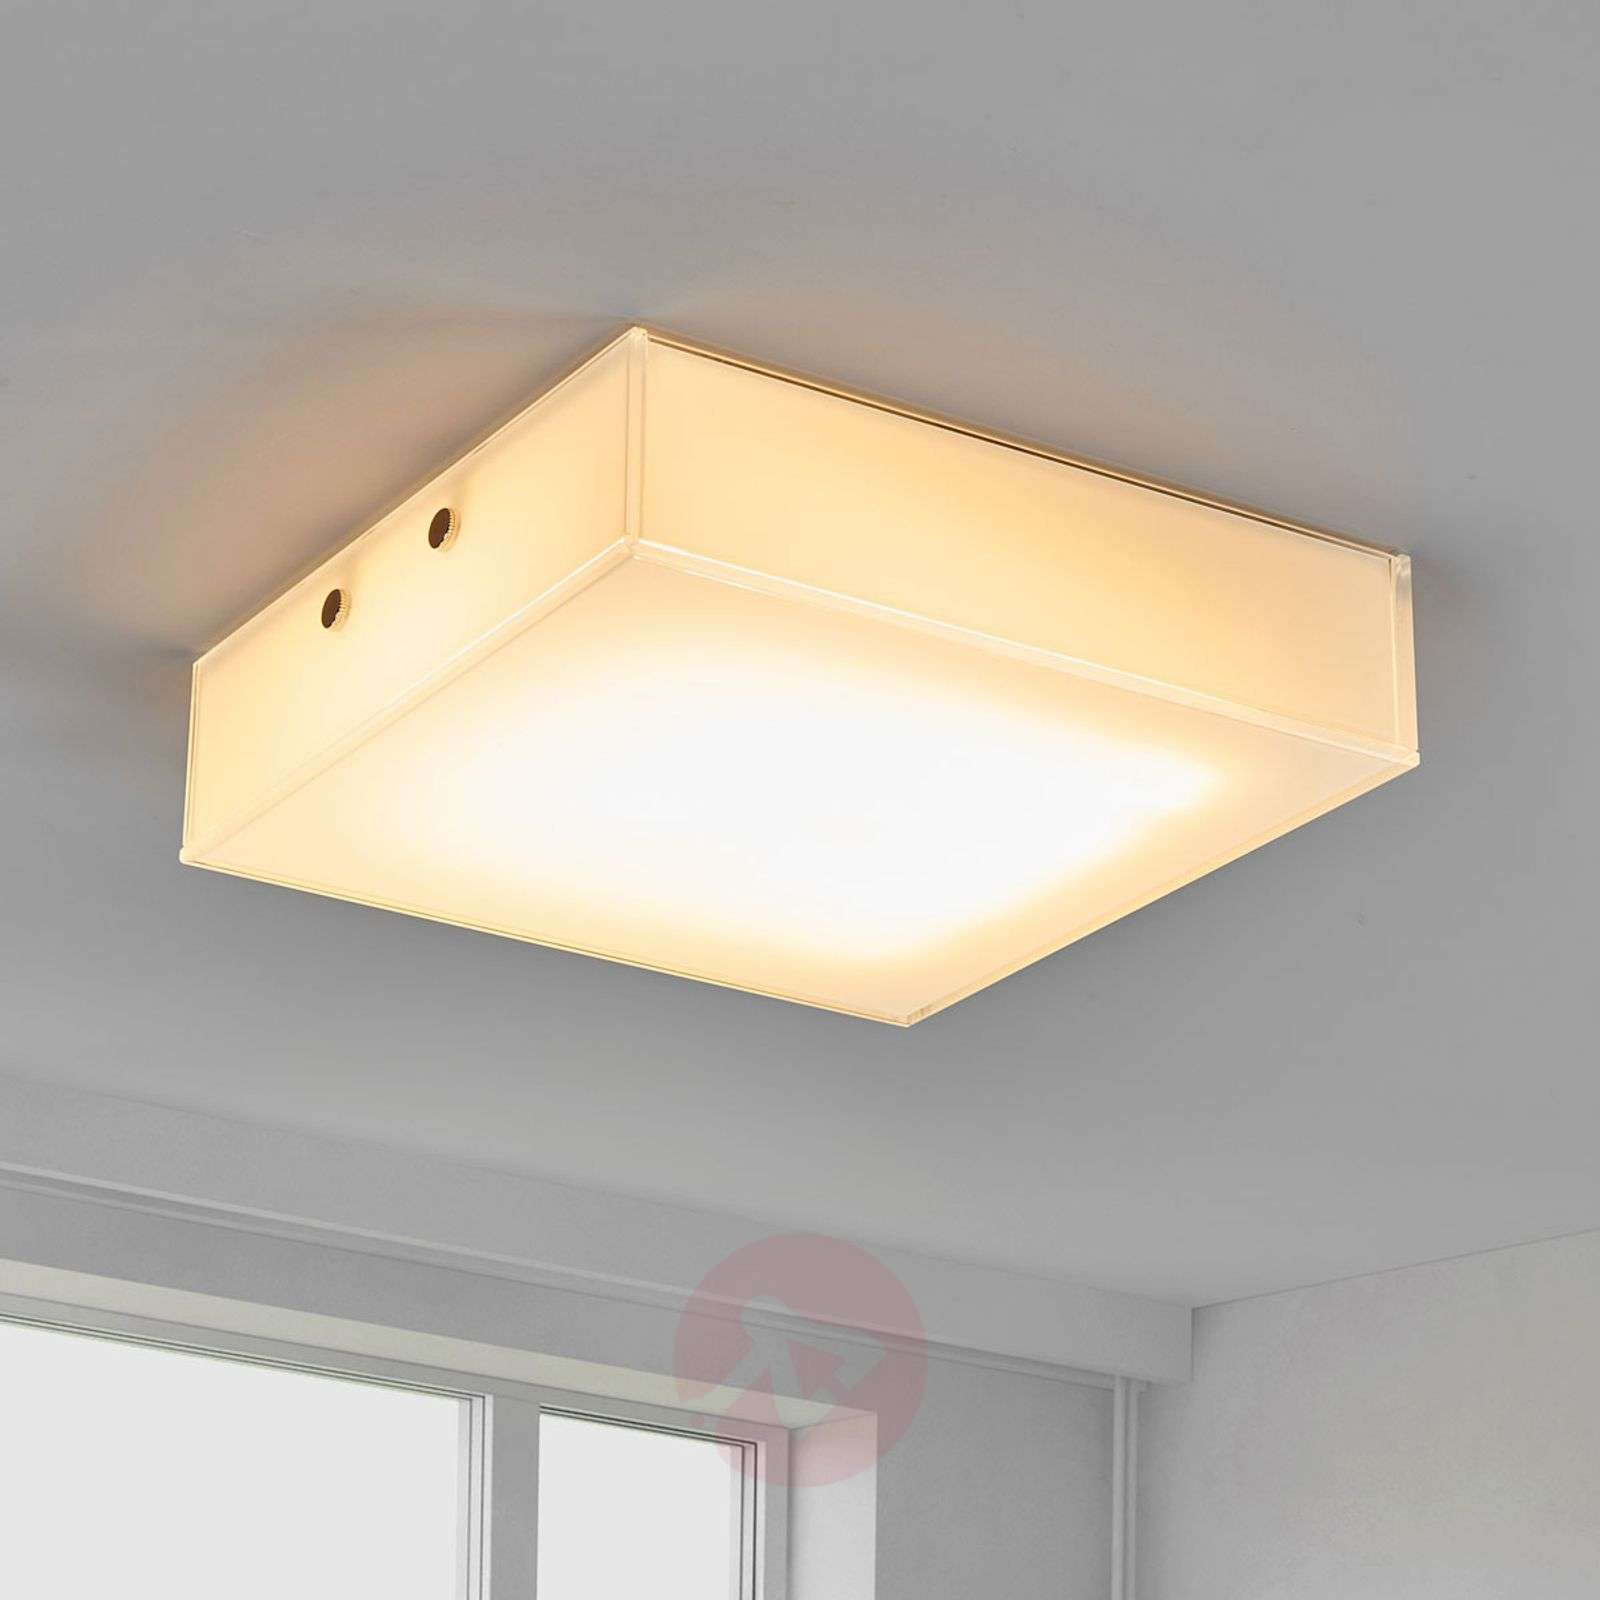 Plafoniere Da Soffitto Classiche : Acquista plafoniera led quadro dal design quadrato lampade.it